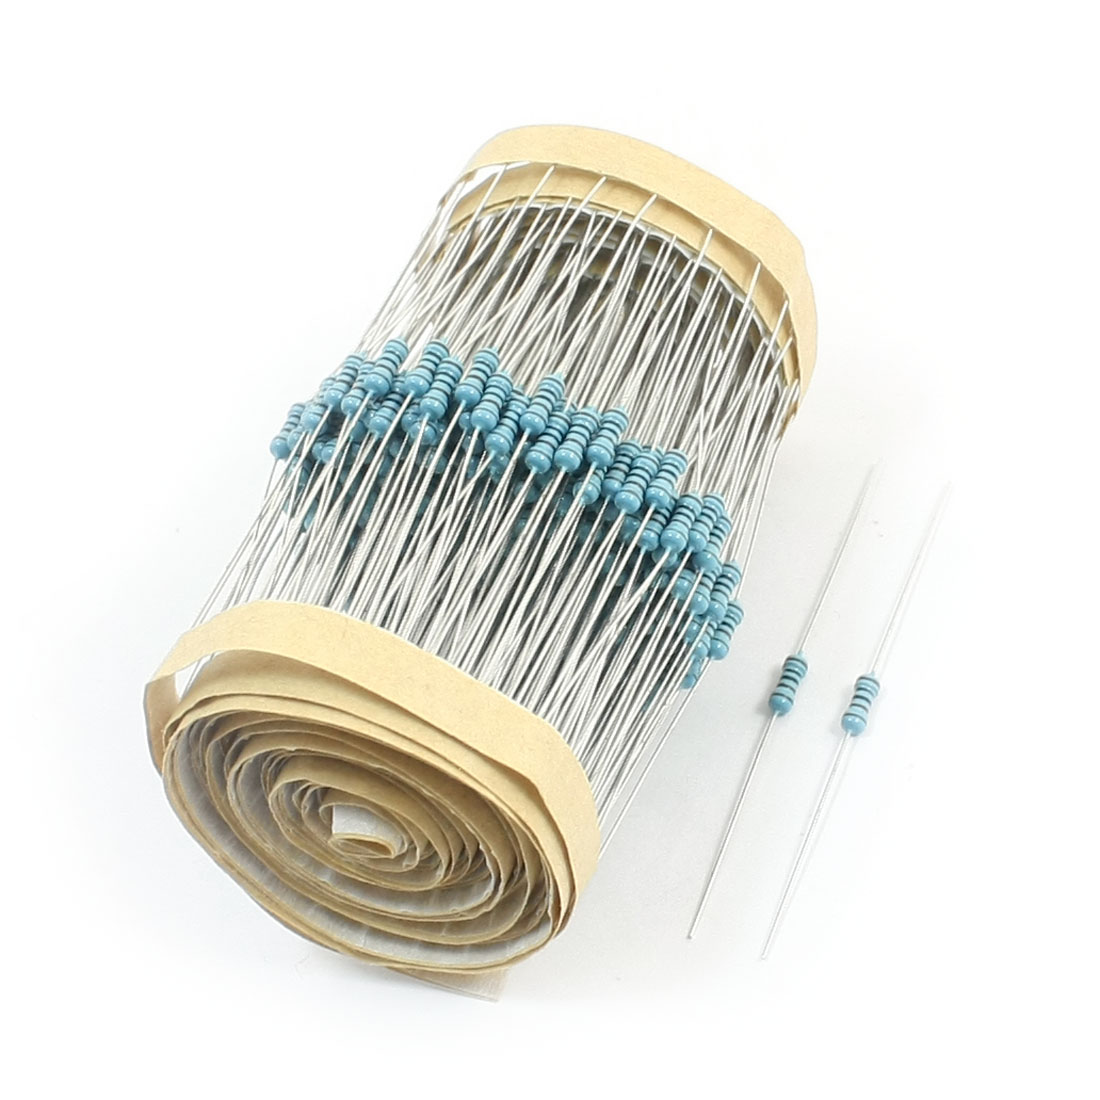 300 Pcs 1/4W Power 1% 1K Ohm Colored Ring Through Hole Mounting Flameproof Axial Lead Metal Oxide Film Resistors